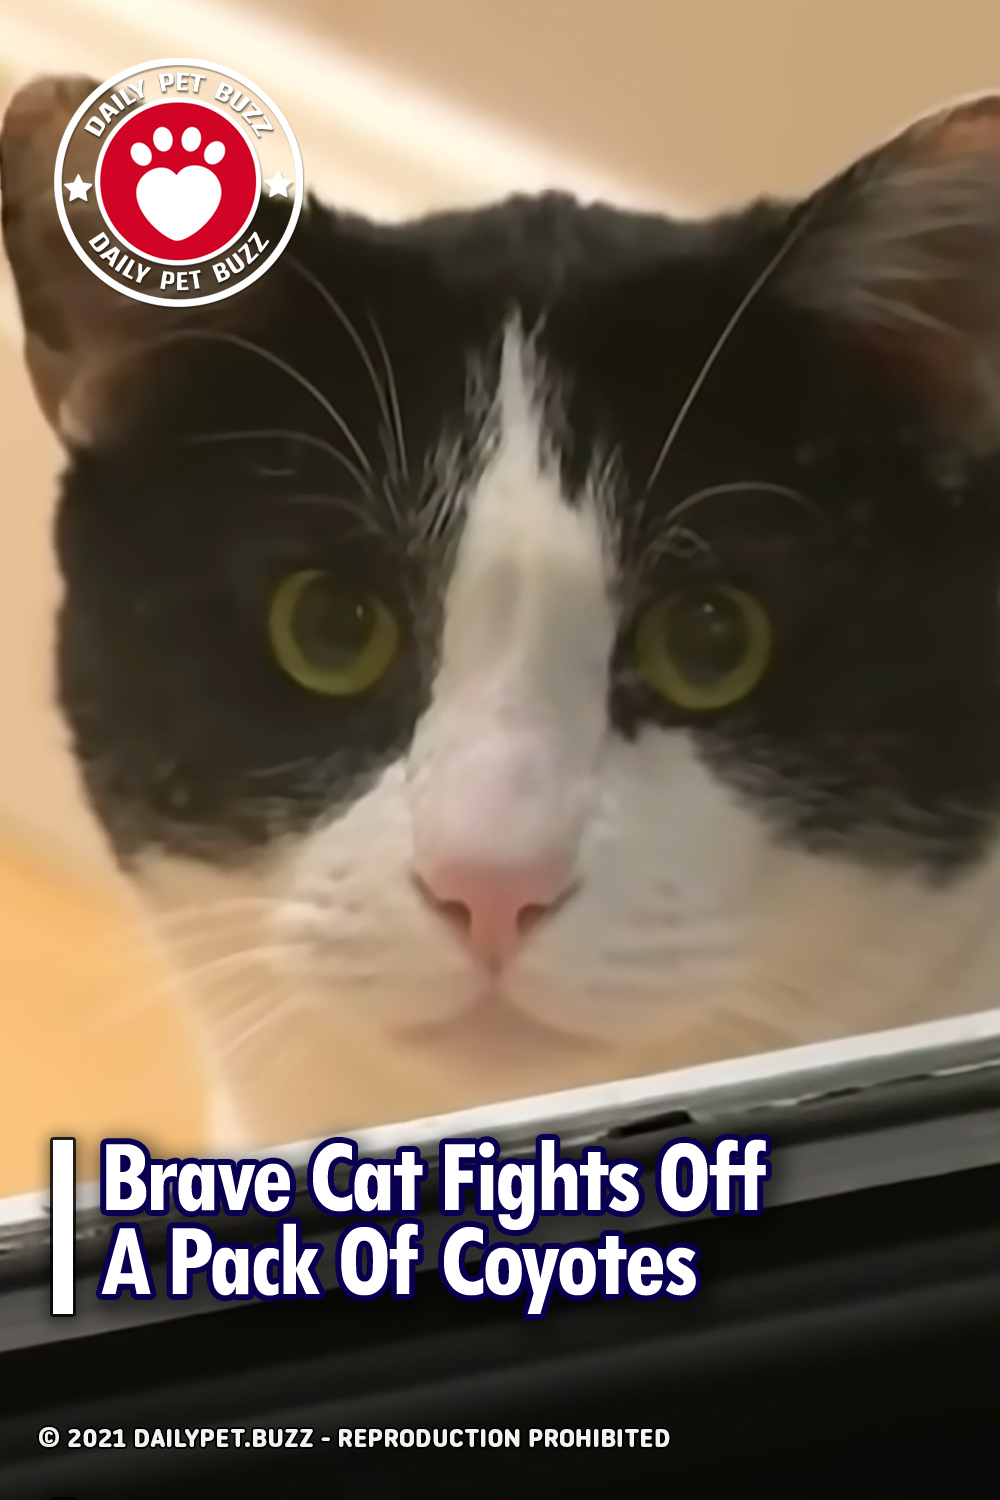 Brave Cat Fights Off A Pack Of Coyotes